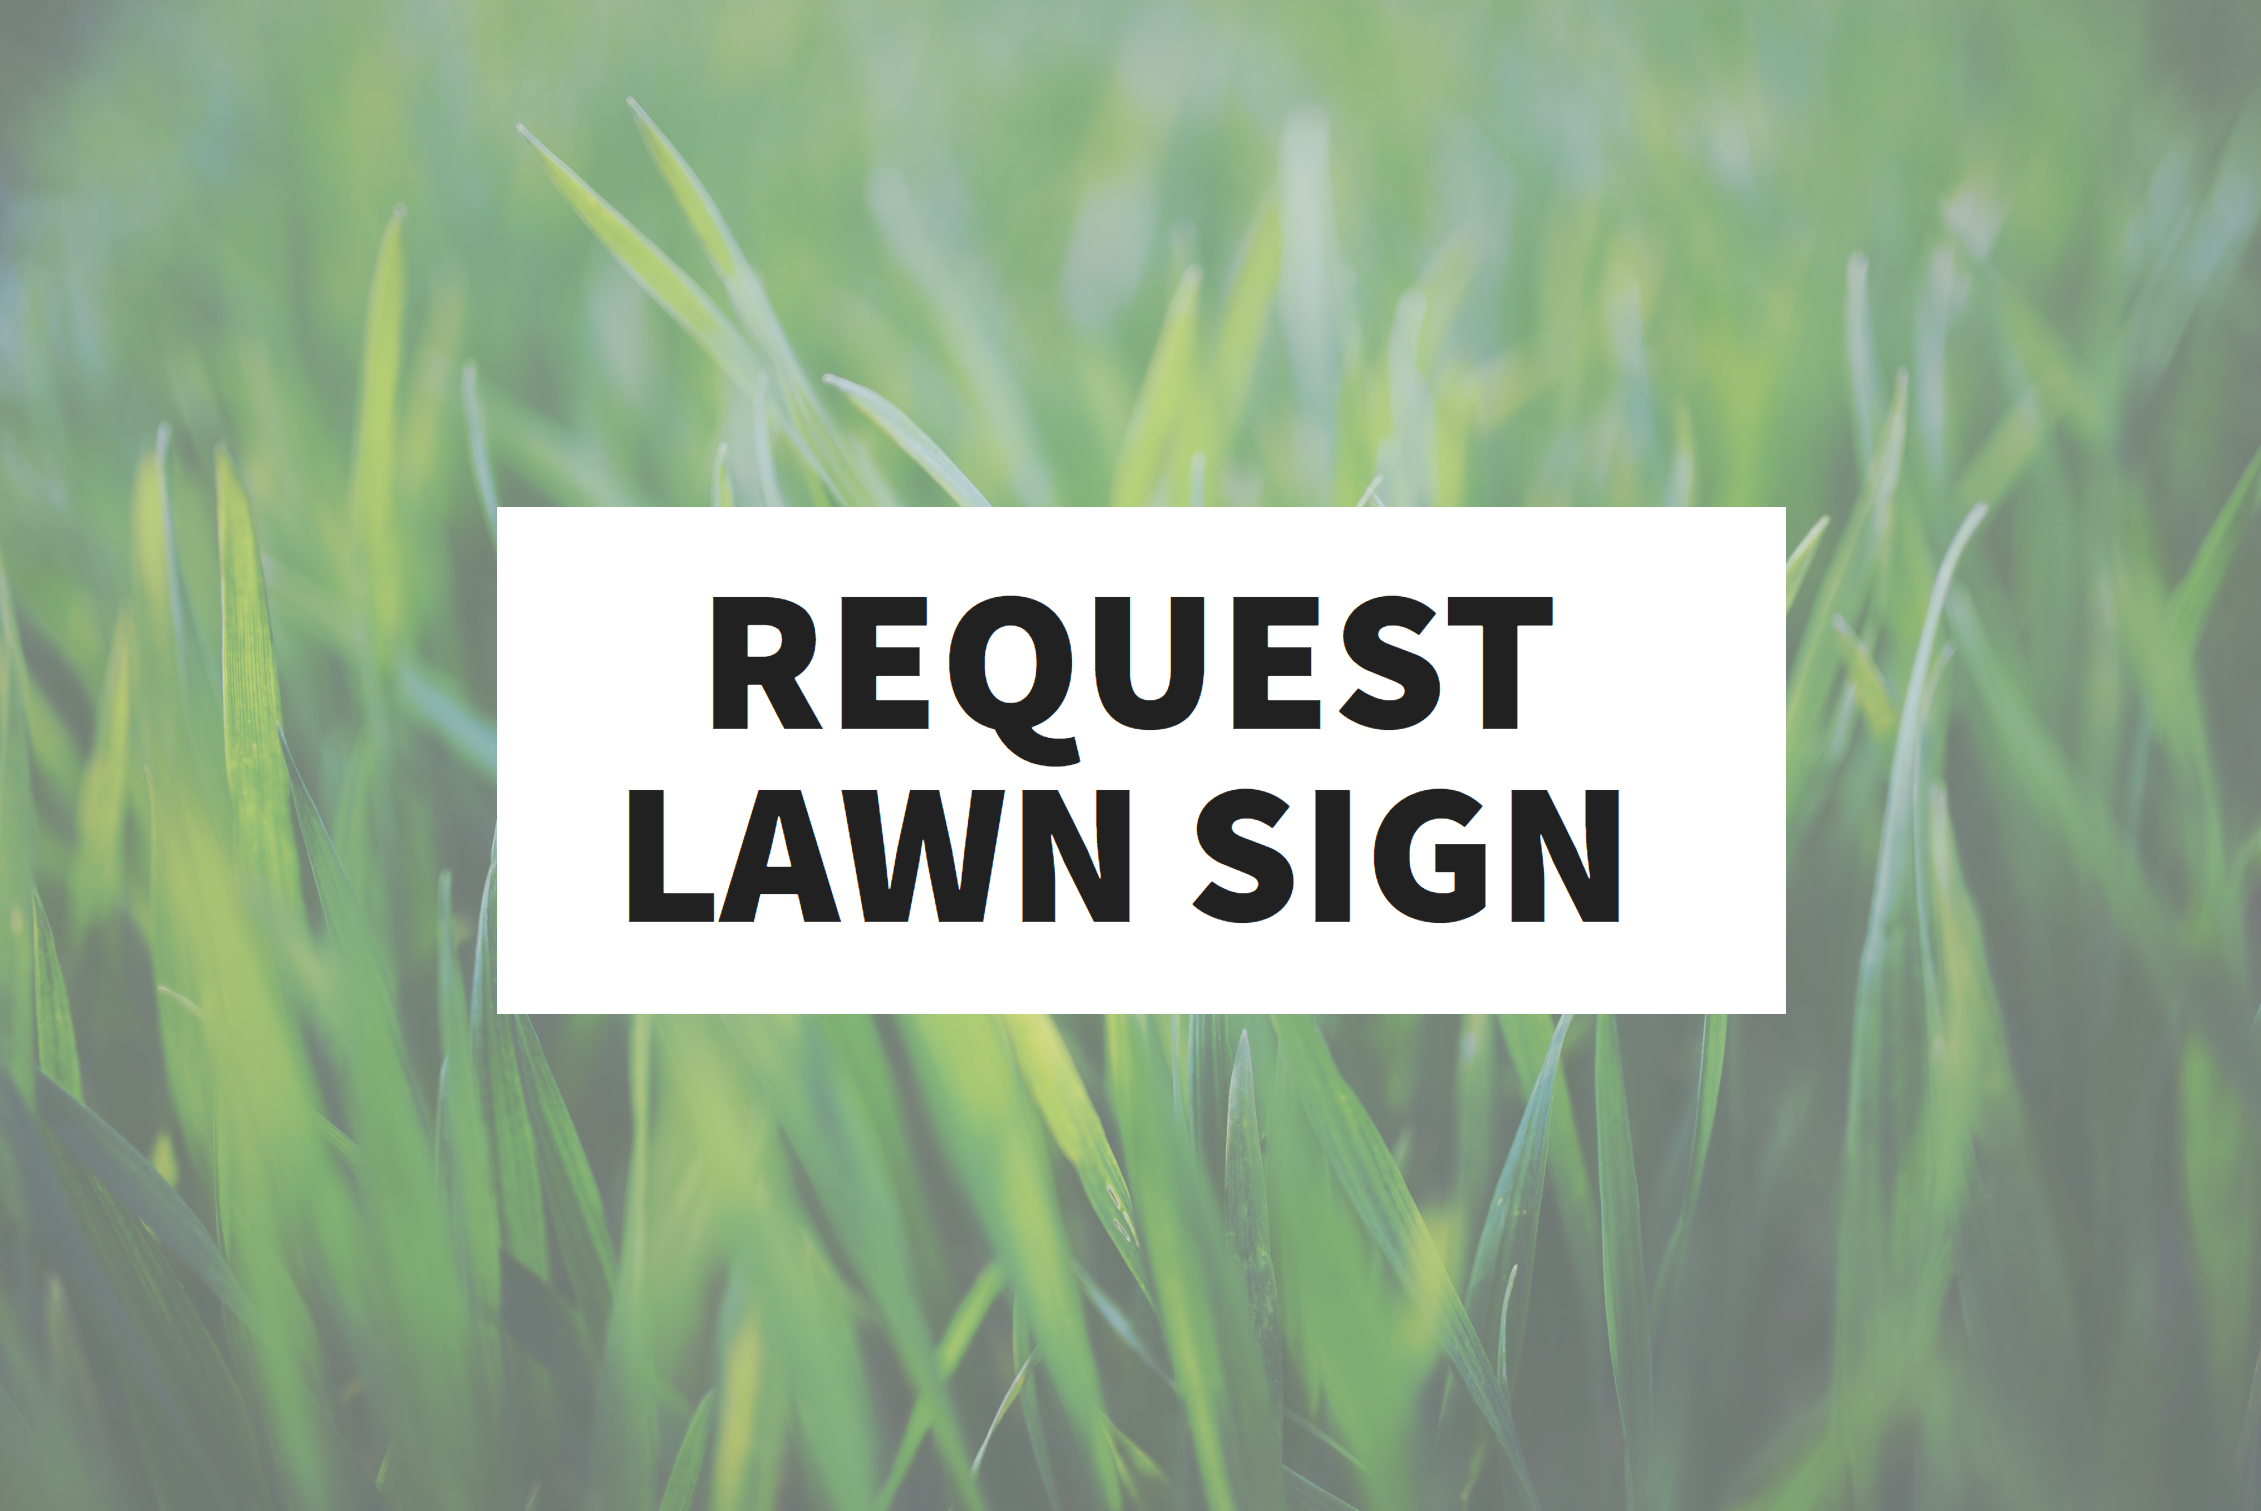 LawnSign